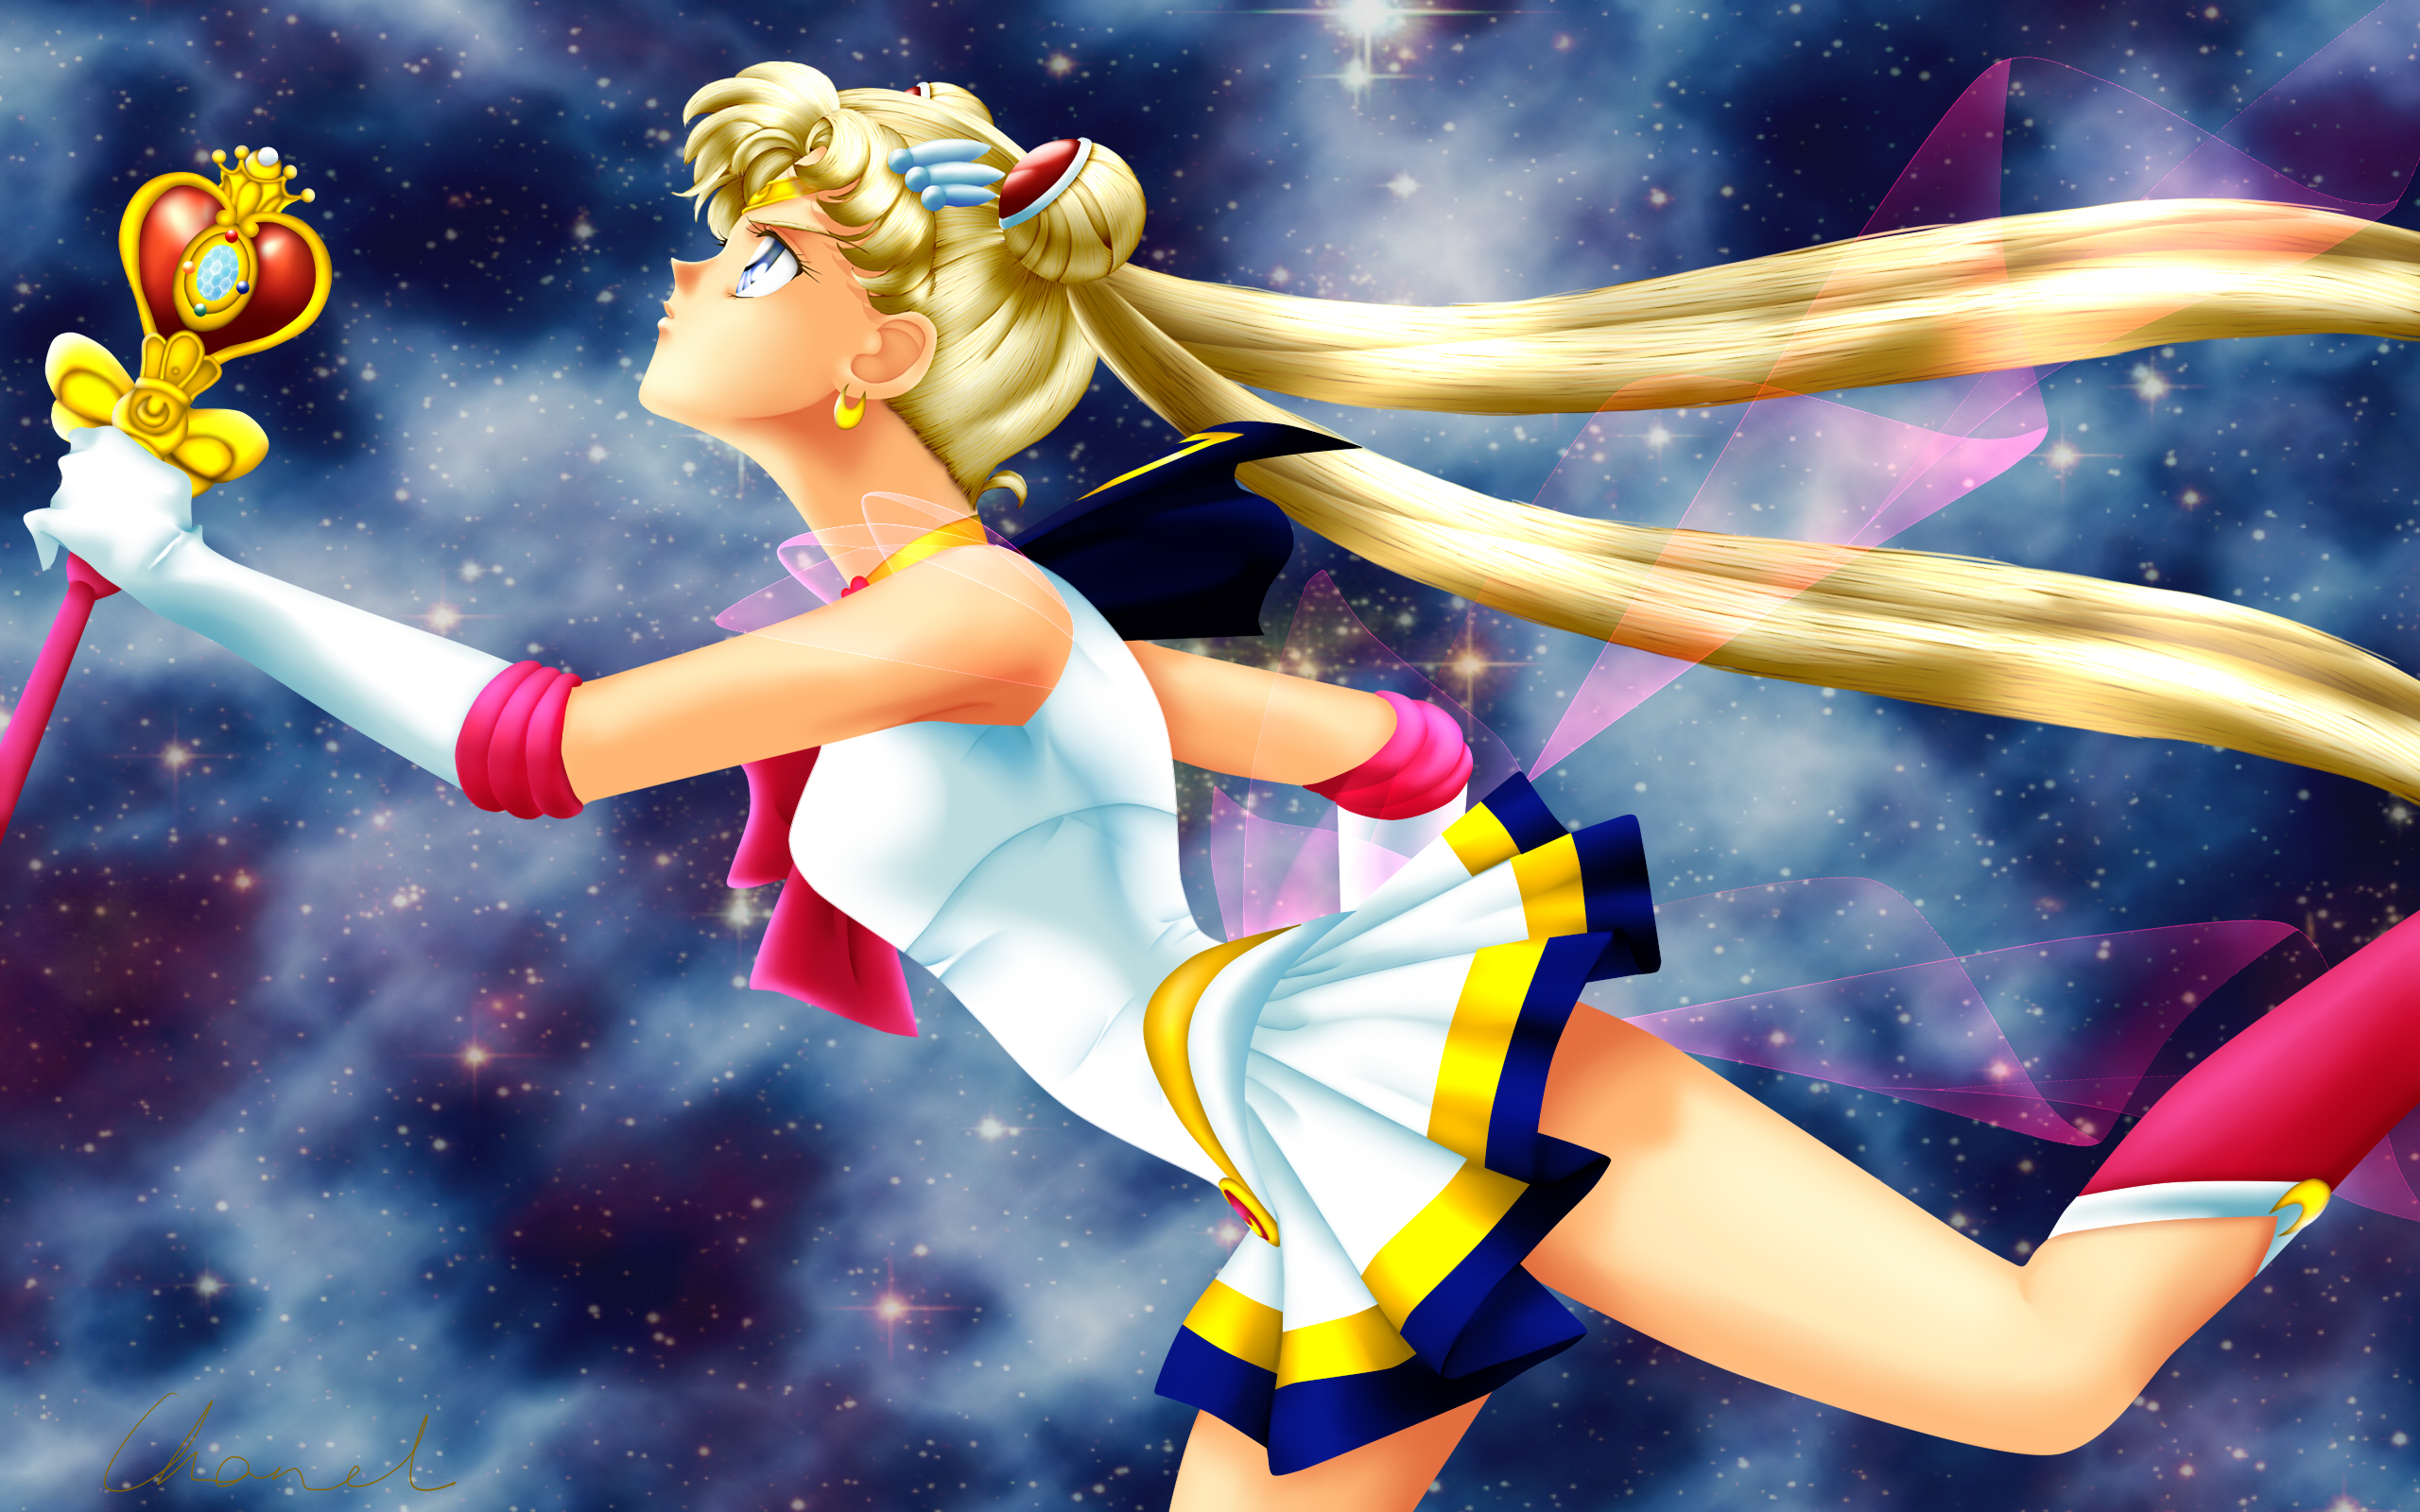 Great Wallpaper Macbook Sailor Moon - 106288  Collection_475884.jpg